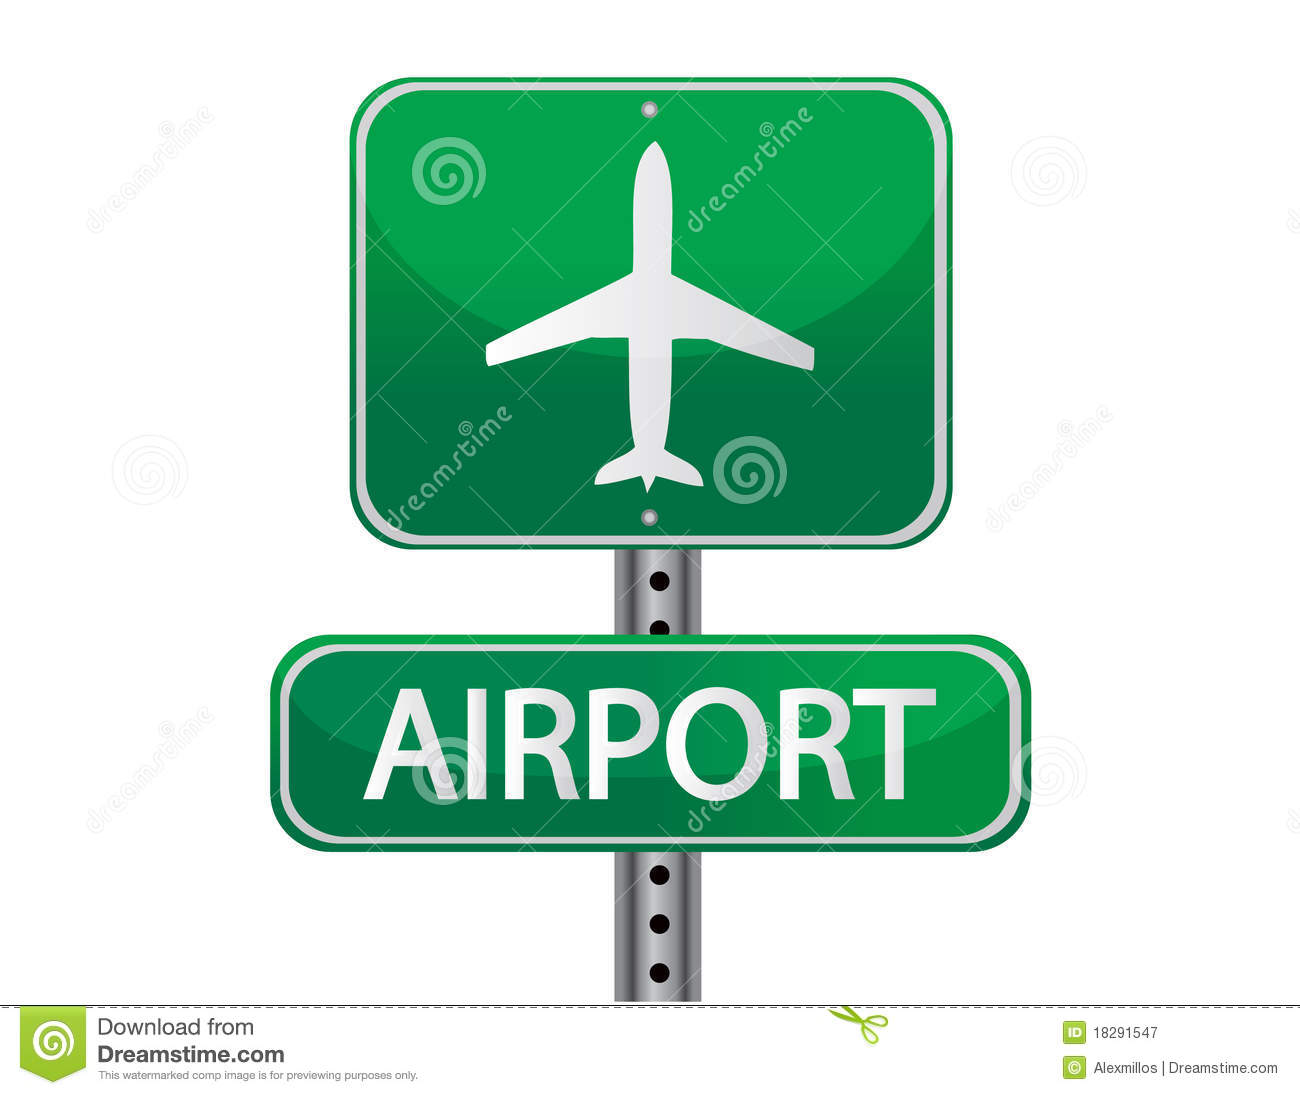 airport gate clipart - photo #35